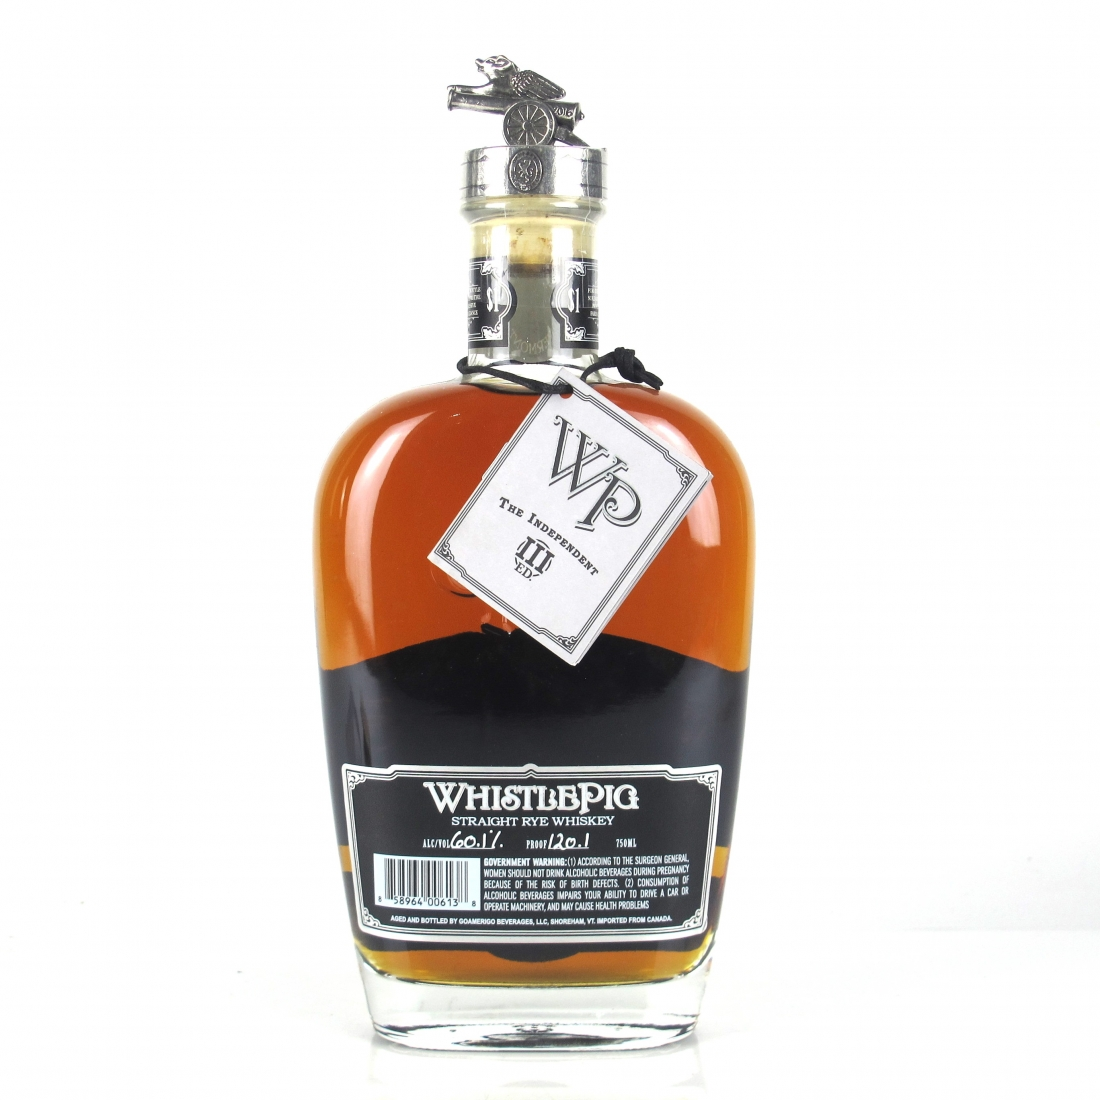 Whistlepig 14 Year Old Single Barrel Rye / The Boss Hog 3rd Edition